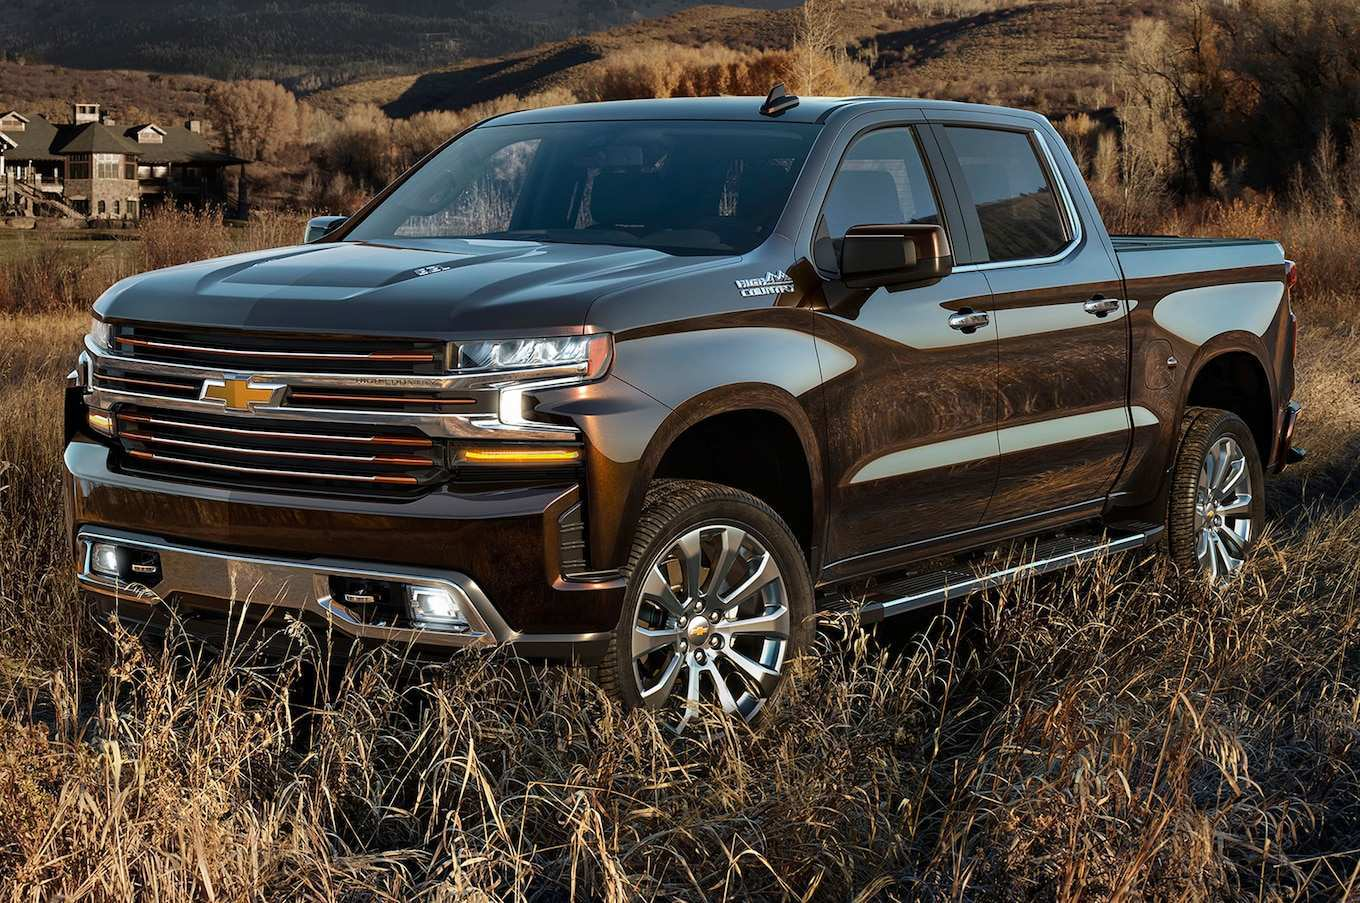 44 Best Review New 2019 Chevrolet Silverado Interior Specs And Review Interior for New 2019 Chevrolet Silverado Interior Specs And Review